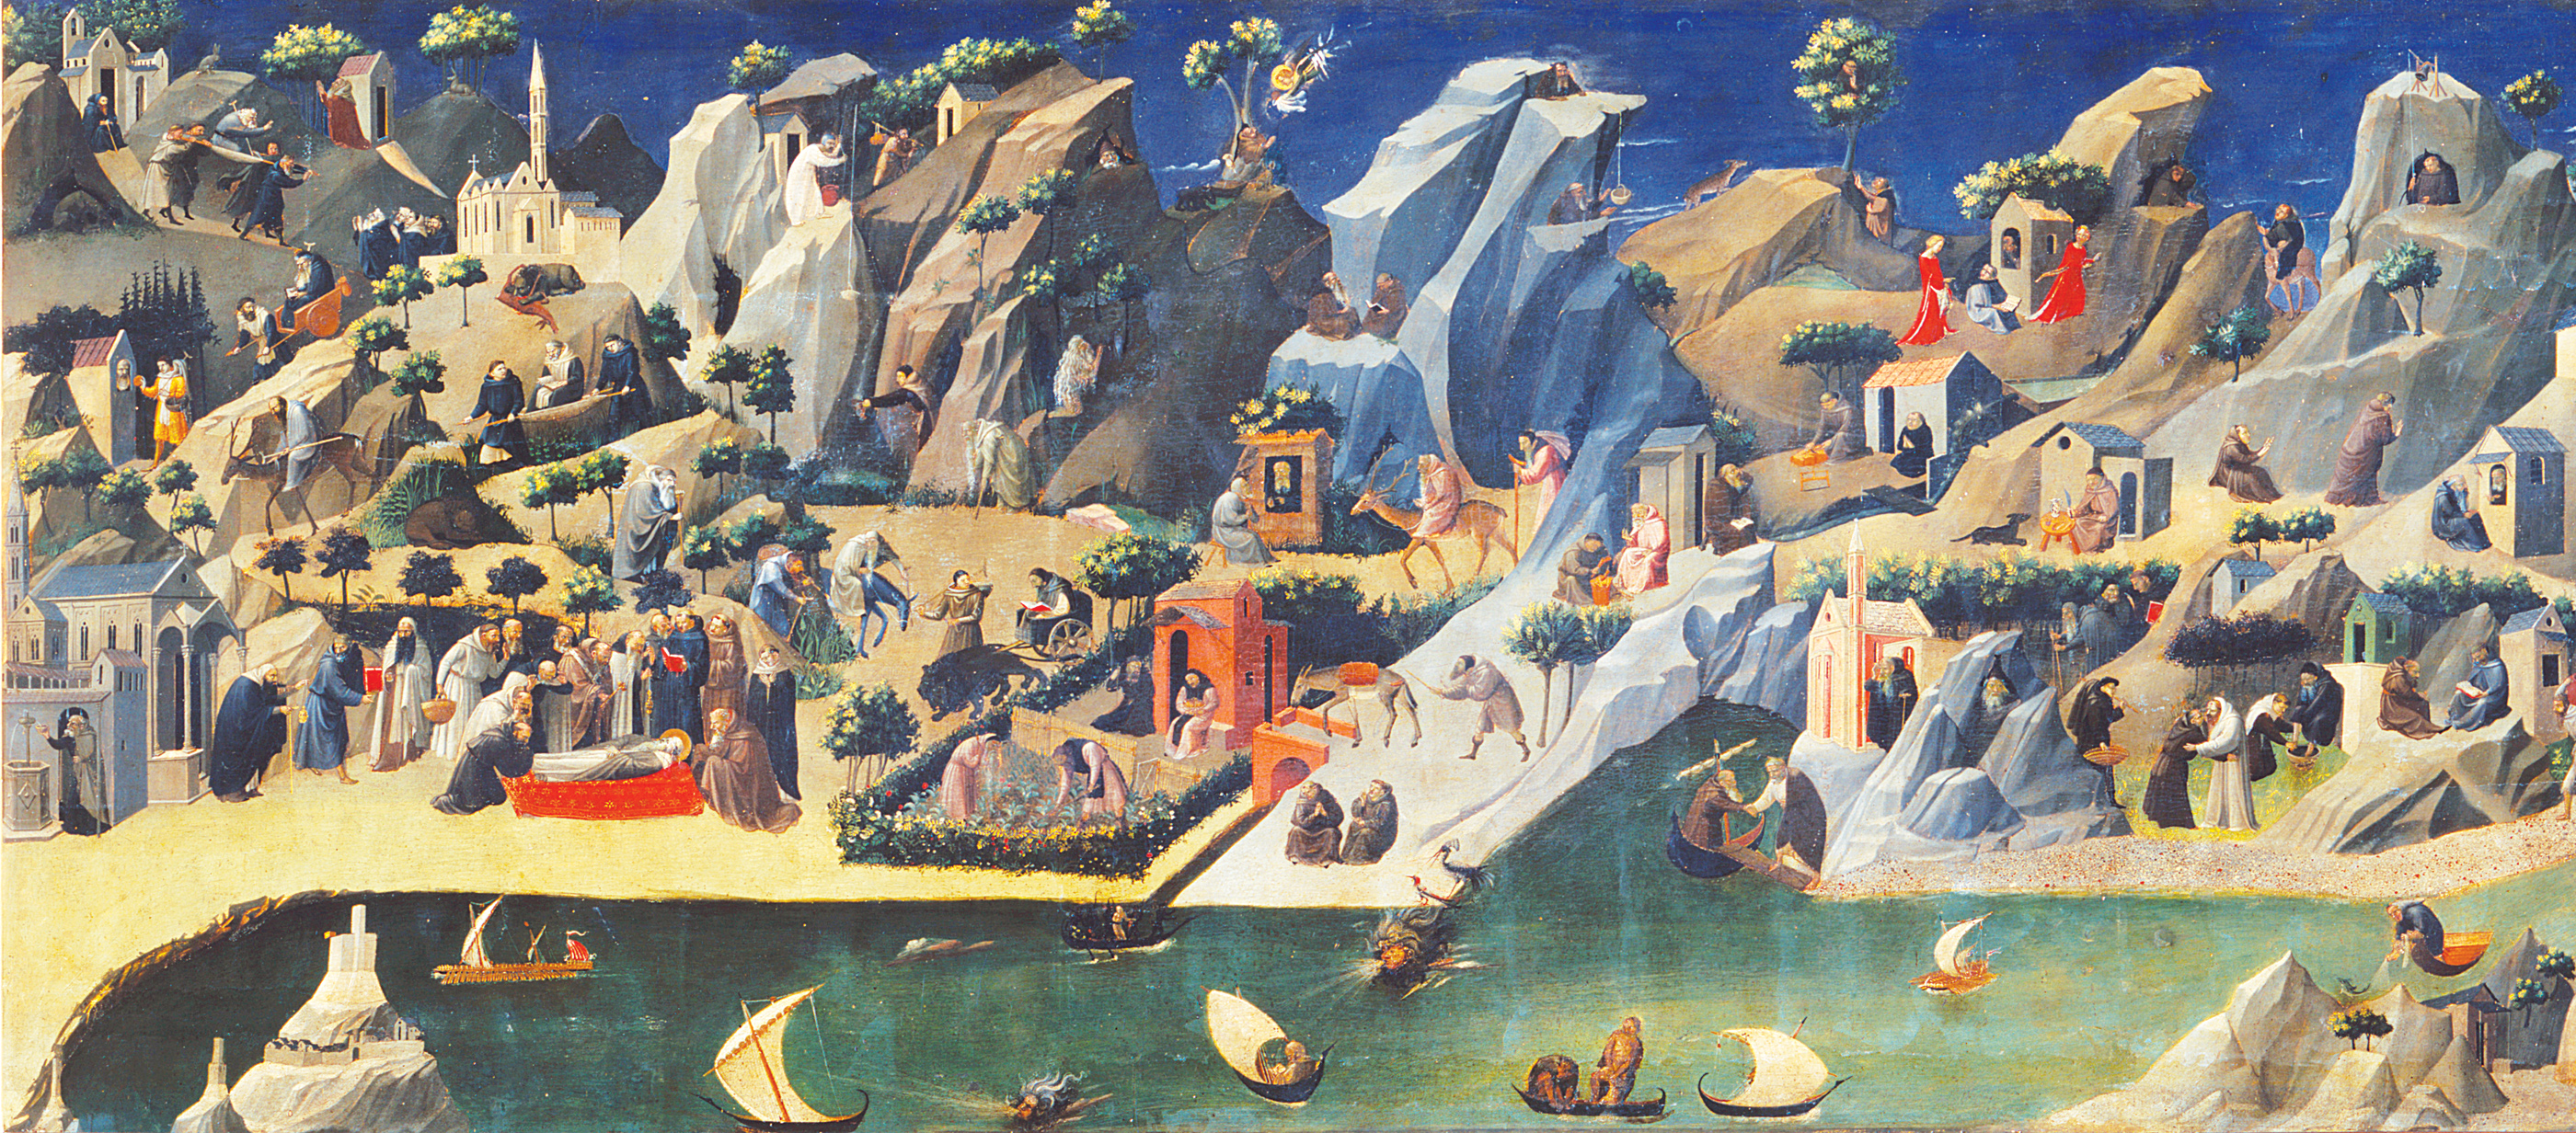 The Thebaide, by Fra Angelico, c. 1420. Uffizi Gallery, Florence, Italy.